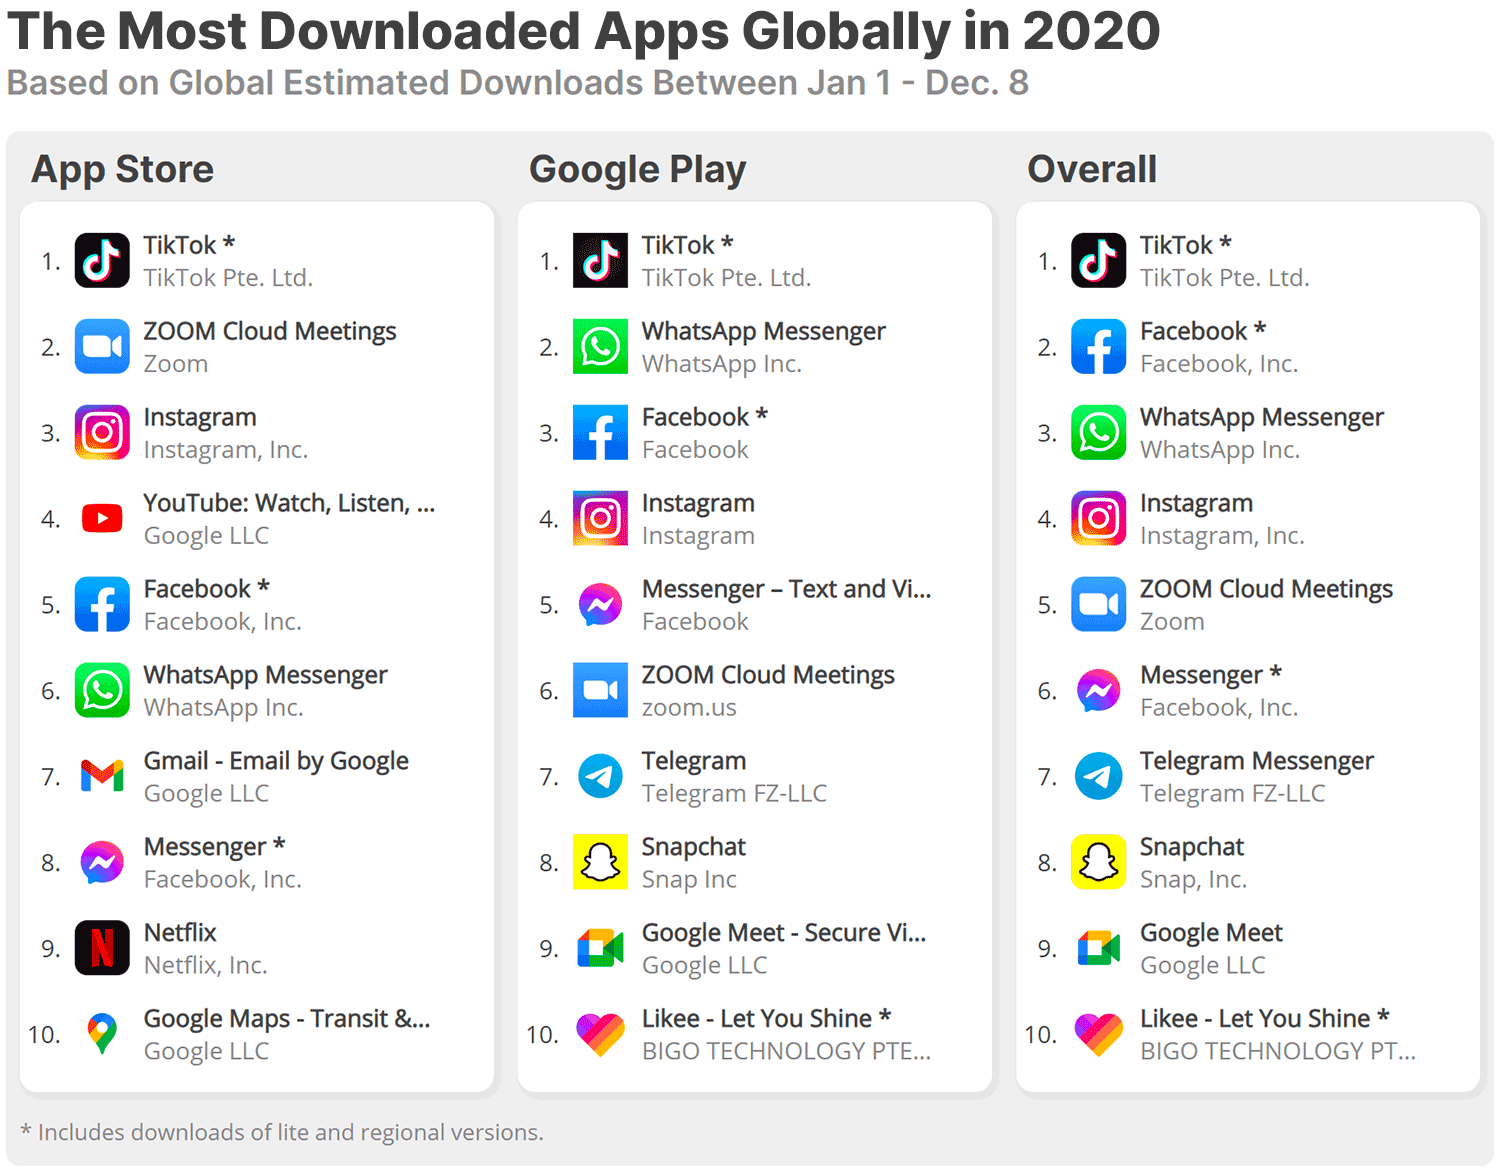 TikTok was the most downloaded app of 2020